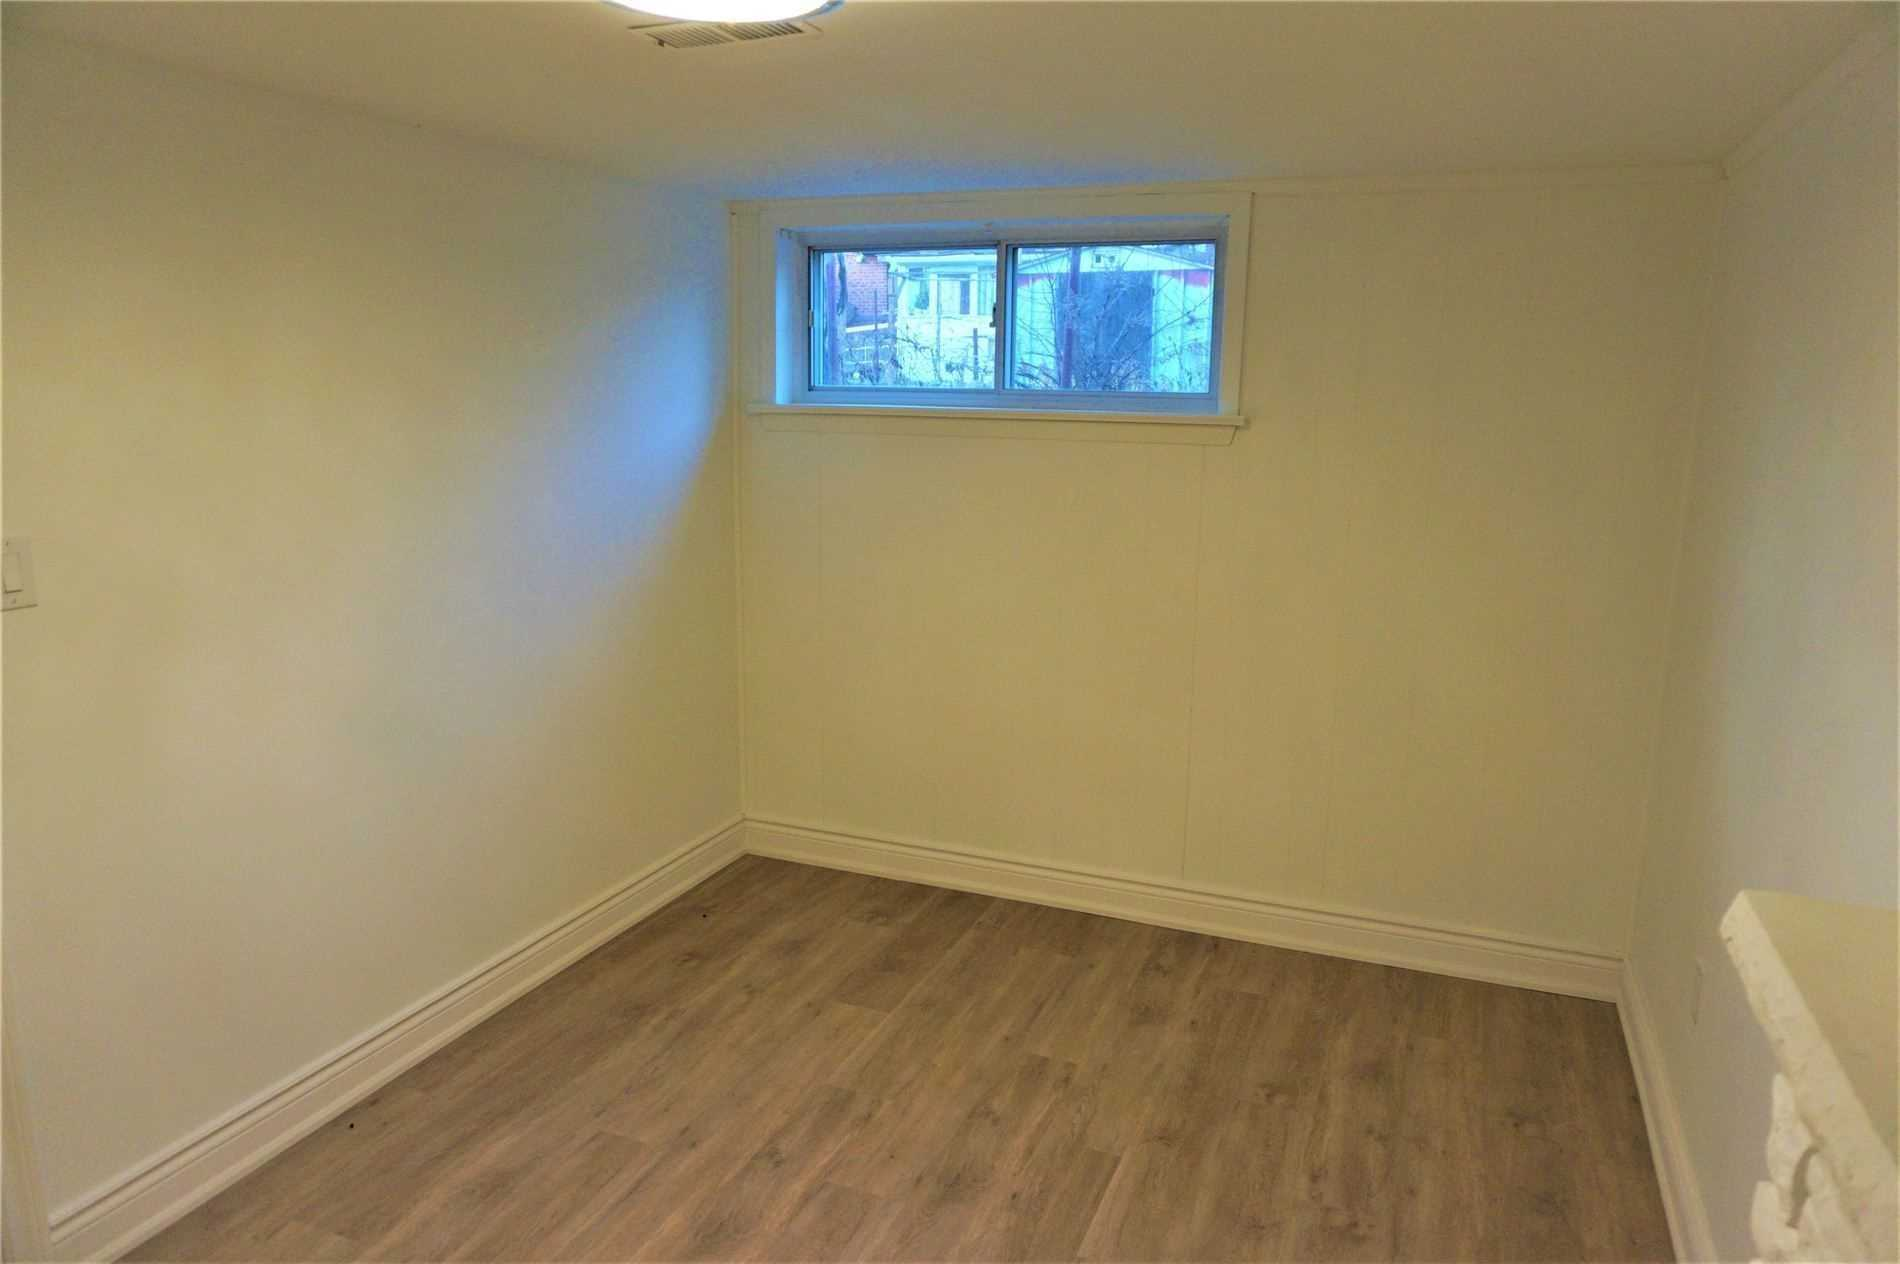 Image 6 of 10 showing inside of 1 Bedroom Detached Bungalow for Lease at 22 Otonabee Ave, Toronto M2M2S3